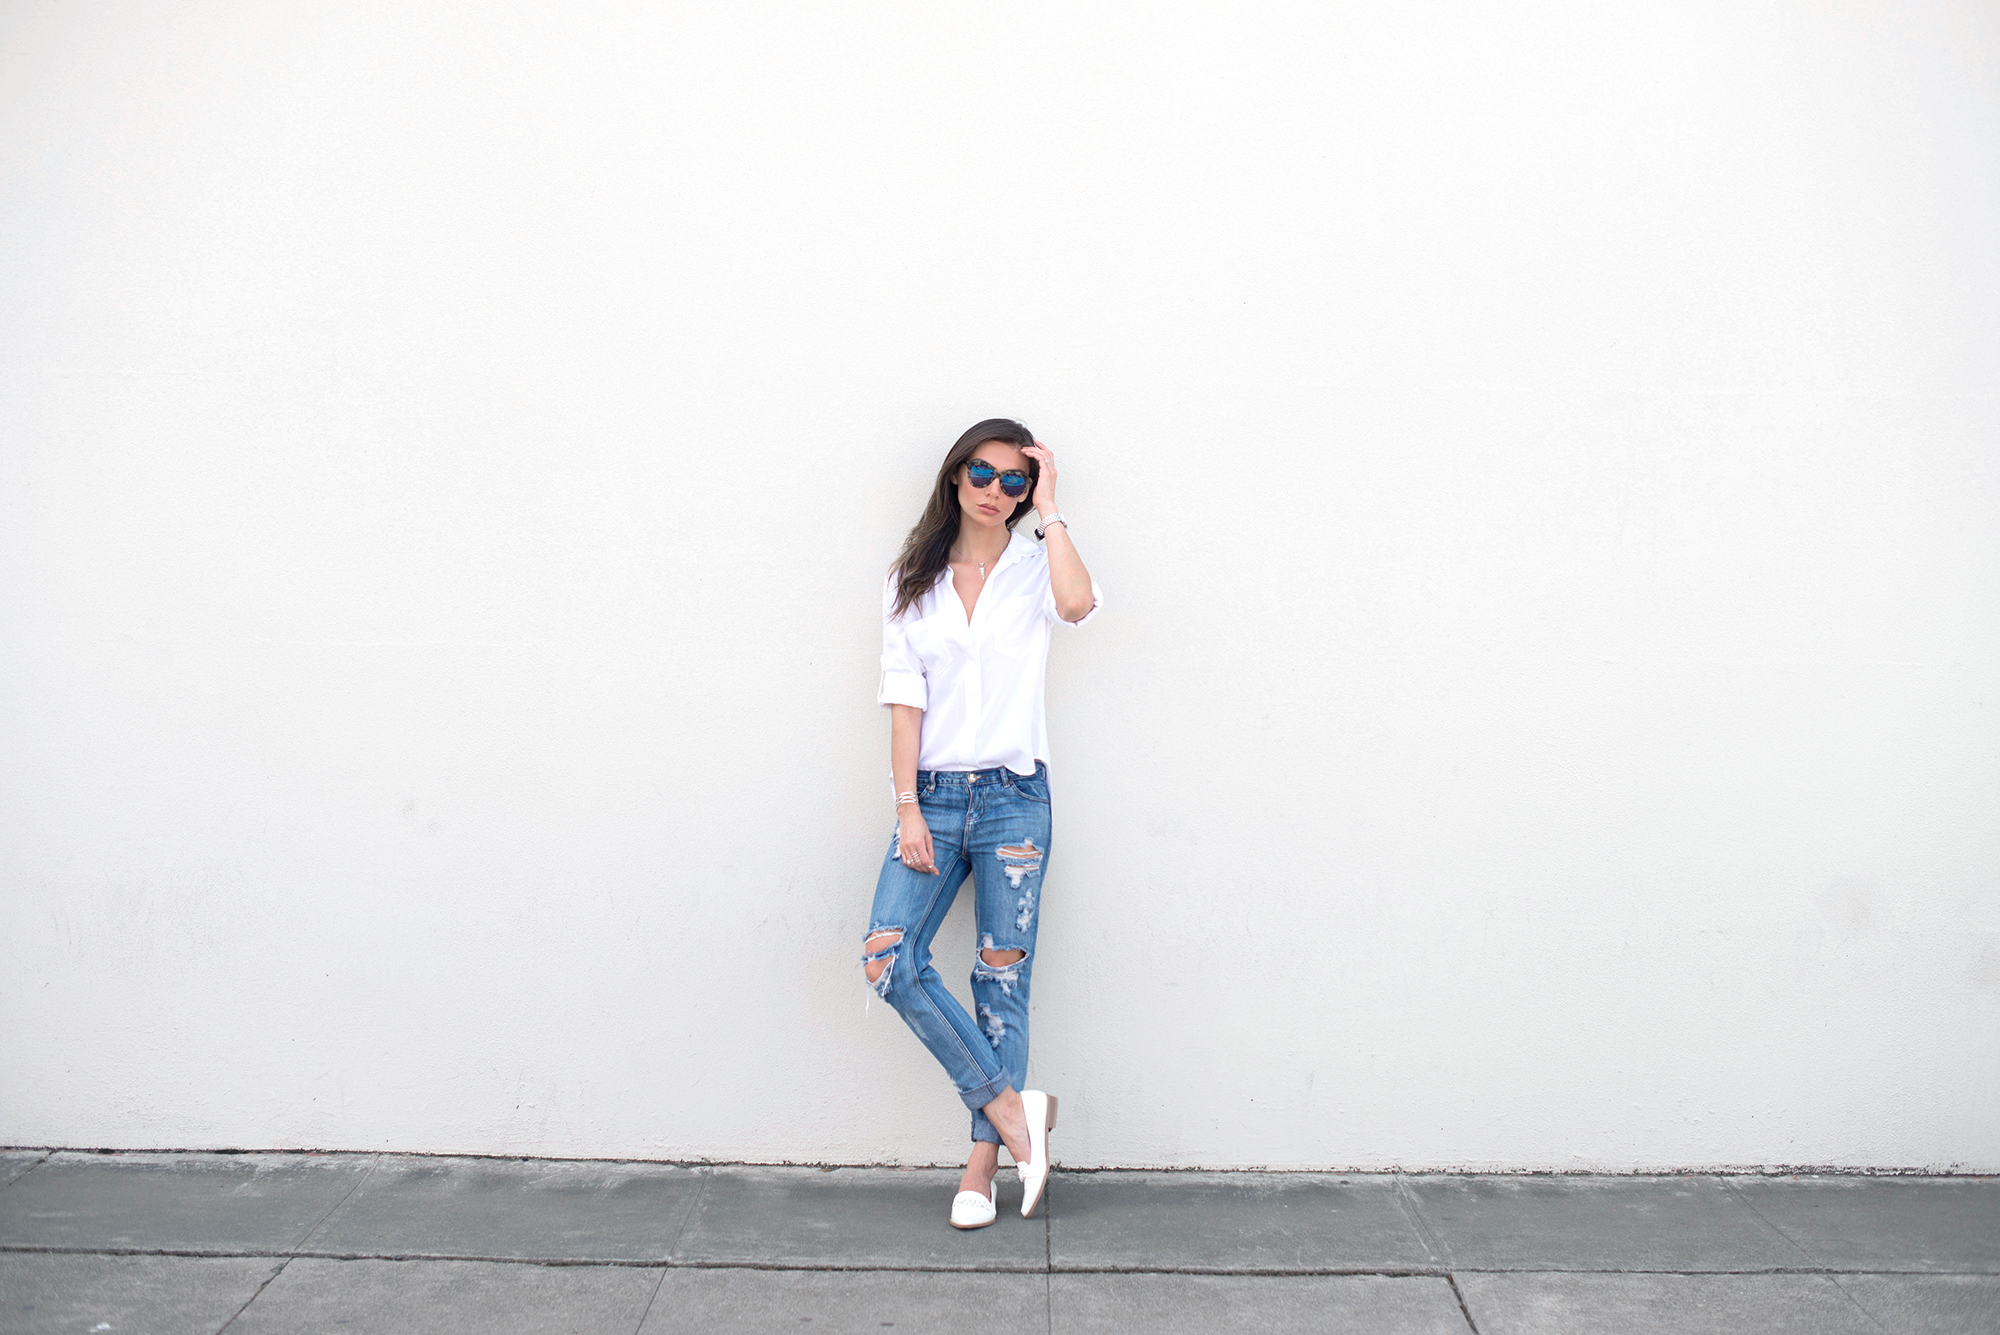 WEARING:    Karen Walker Superstars Sunglasses  ,   Bella Dahl Split Back Shirt  ,   One Teaspoon Awesome Baggies Jeans  ,   Missguided Shoes  ,   Kelly Bello Mini Triangle Necklace  ,   Stretched Triangle Necklace  , and   Square Pearl Ring  ,   Joyus Double H Ring in Silver   ,    Marshelleys Manic Cuff,       Dainty & Bold Midi Ring   ,    Yasmin Joseph Christina Bra   ,    Breda Watch